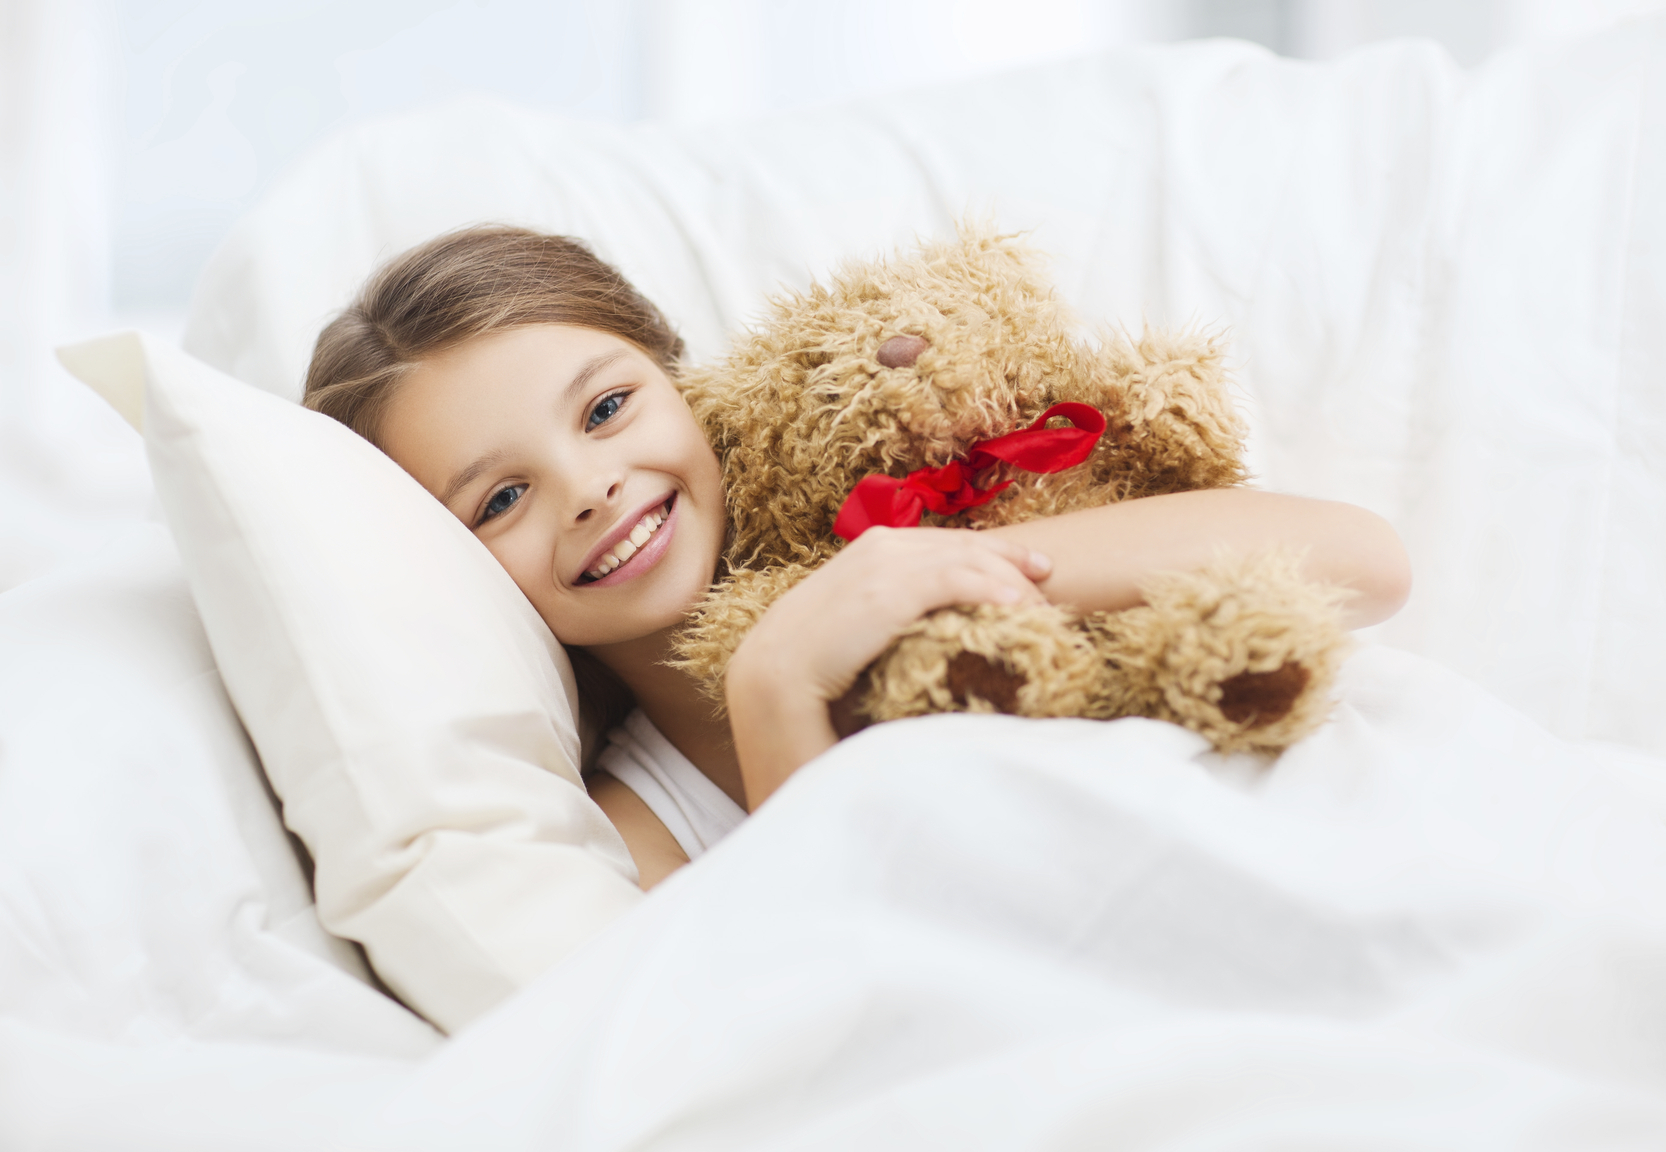 little girl with teddy bear sleeping in bed at home